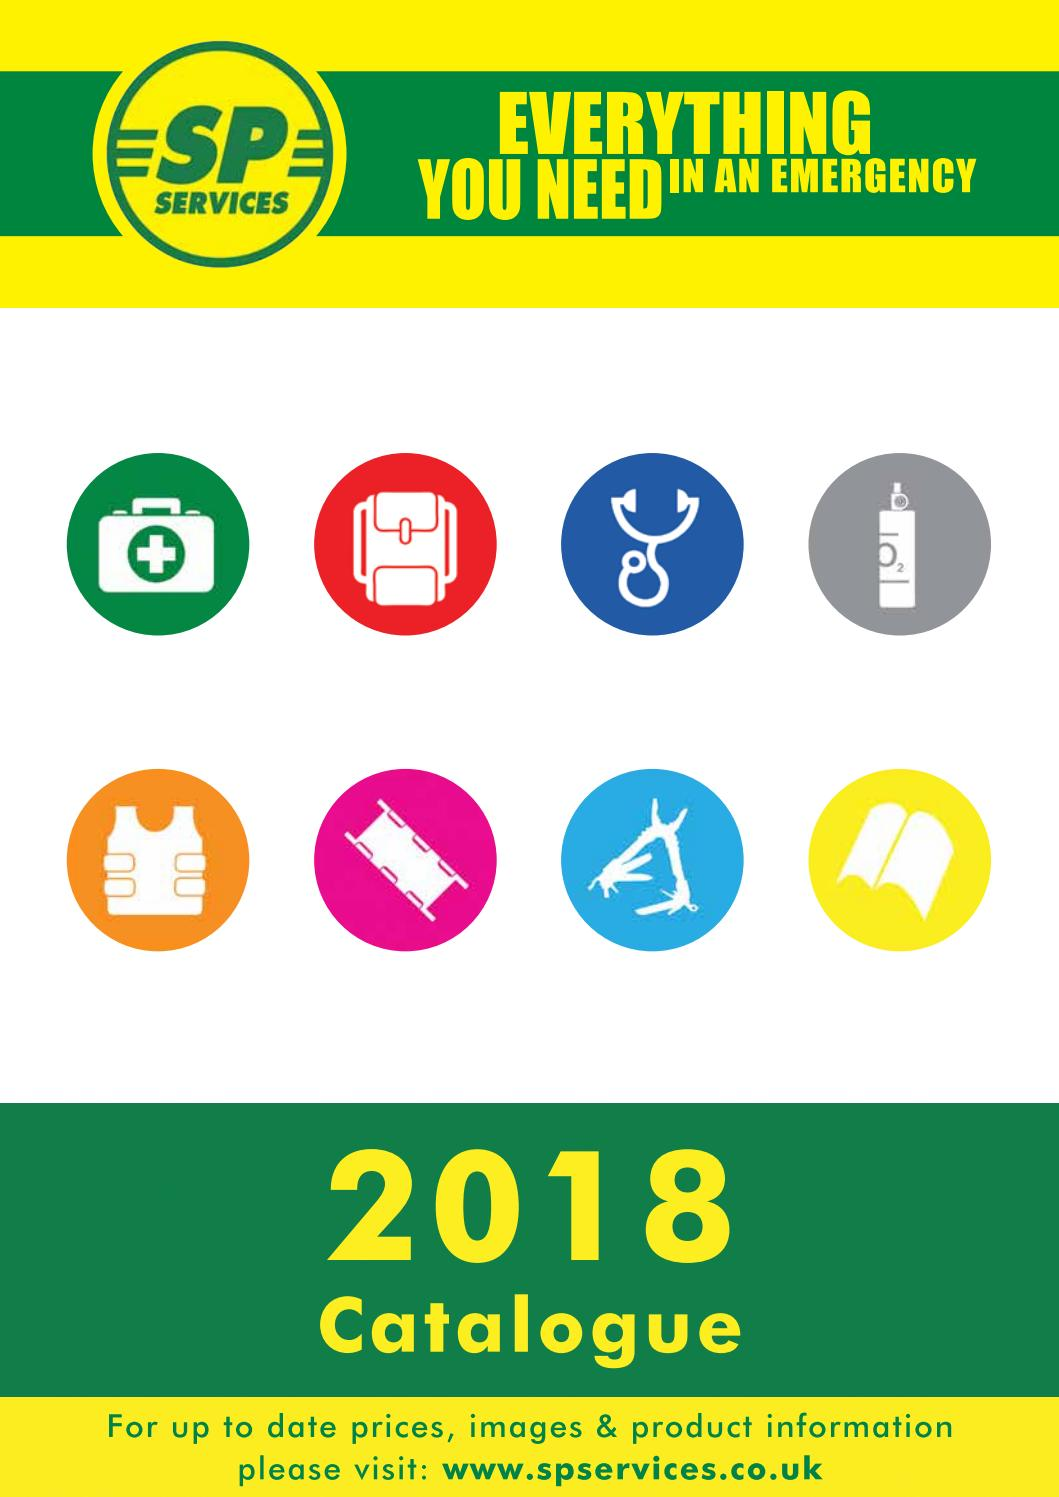 SP Services Catalogue 2018 by SP Services - issuu 150e5e64e651a